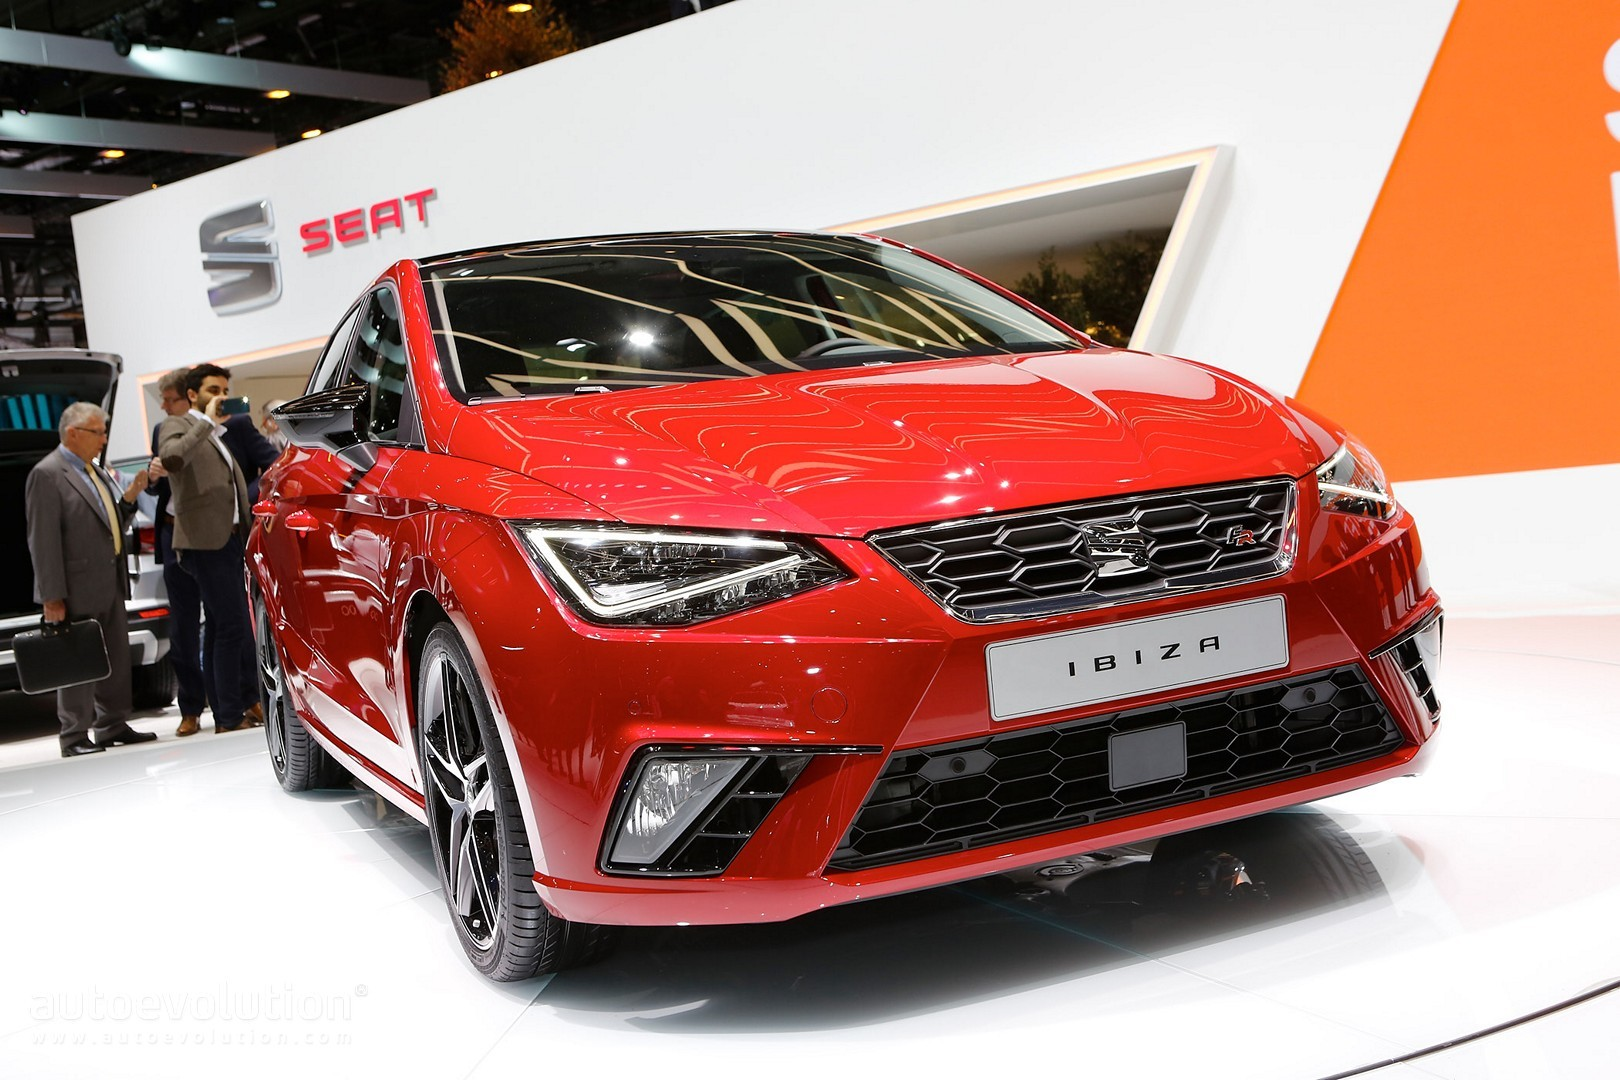 2017 seat ibiza looks like a mini leon in geneva has sportiest fr trim yet autoevolution. Black Bedroom Furniture Sets. Home Design Ideas